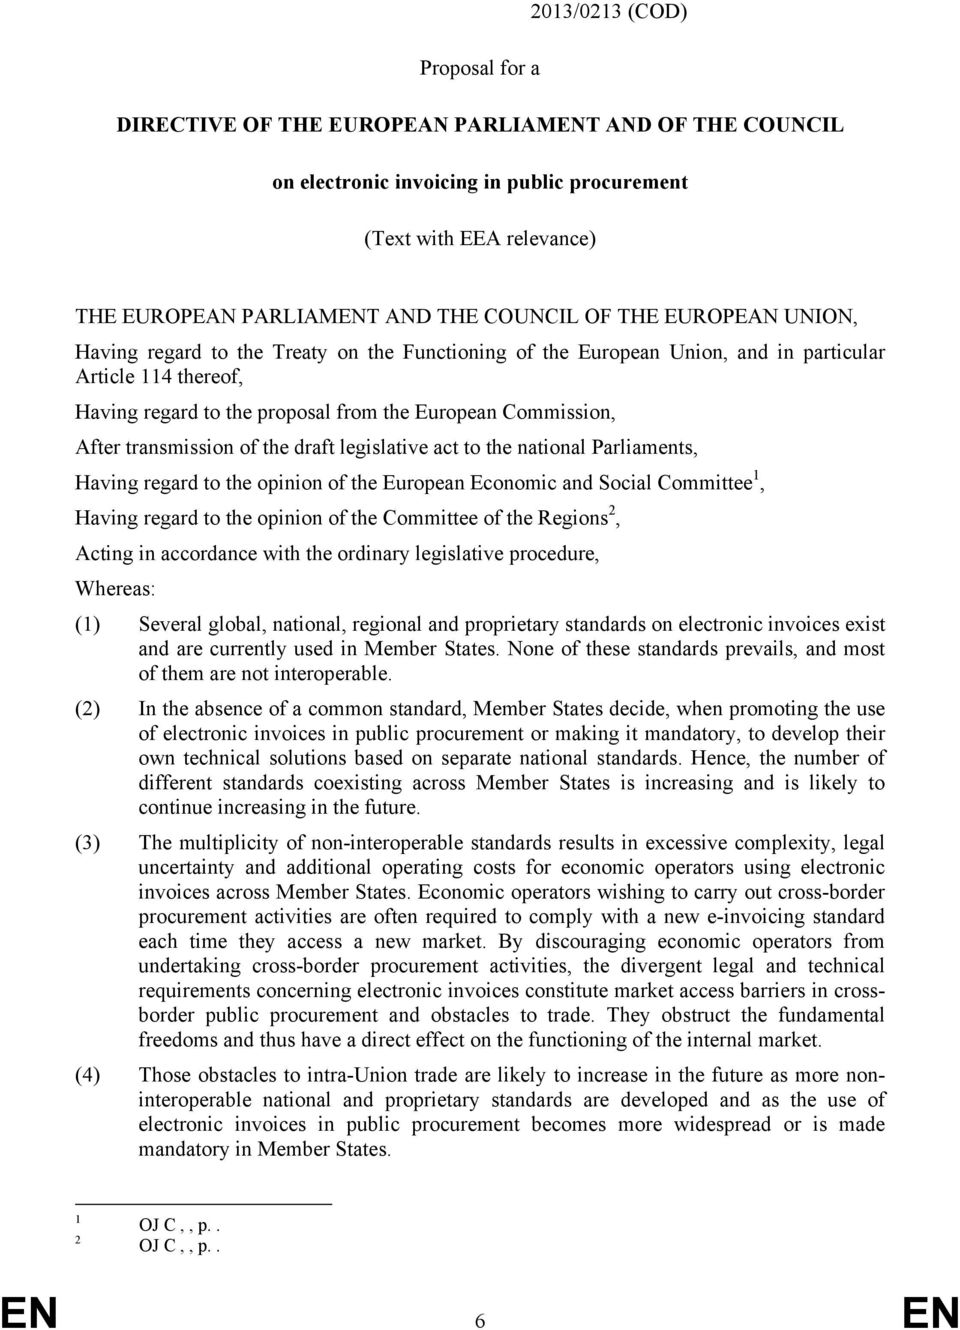 transmission of the draft legislative act to the national Parliaments, Having regard to the opinion of the European Economic and Social Committee 1, Having regard to the opinion of the Committee of